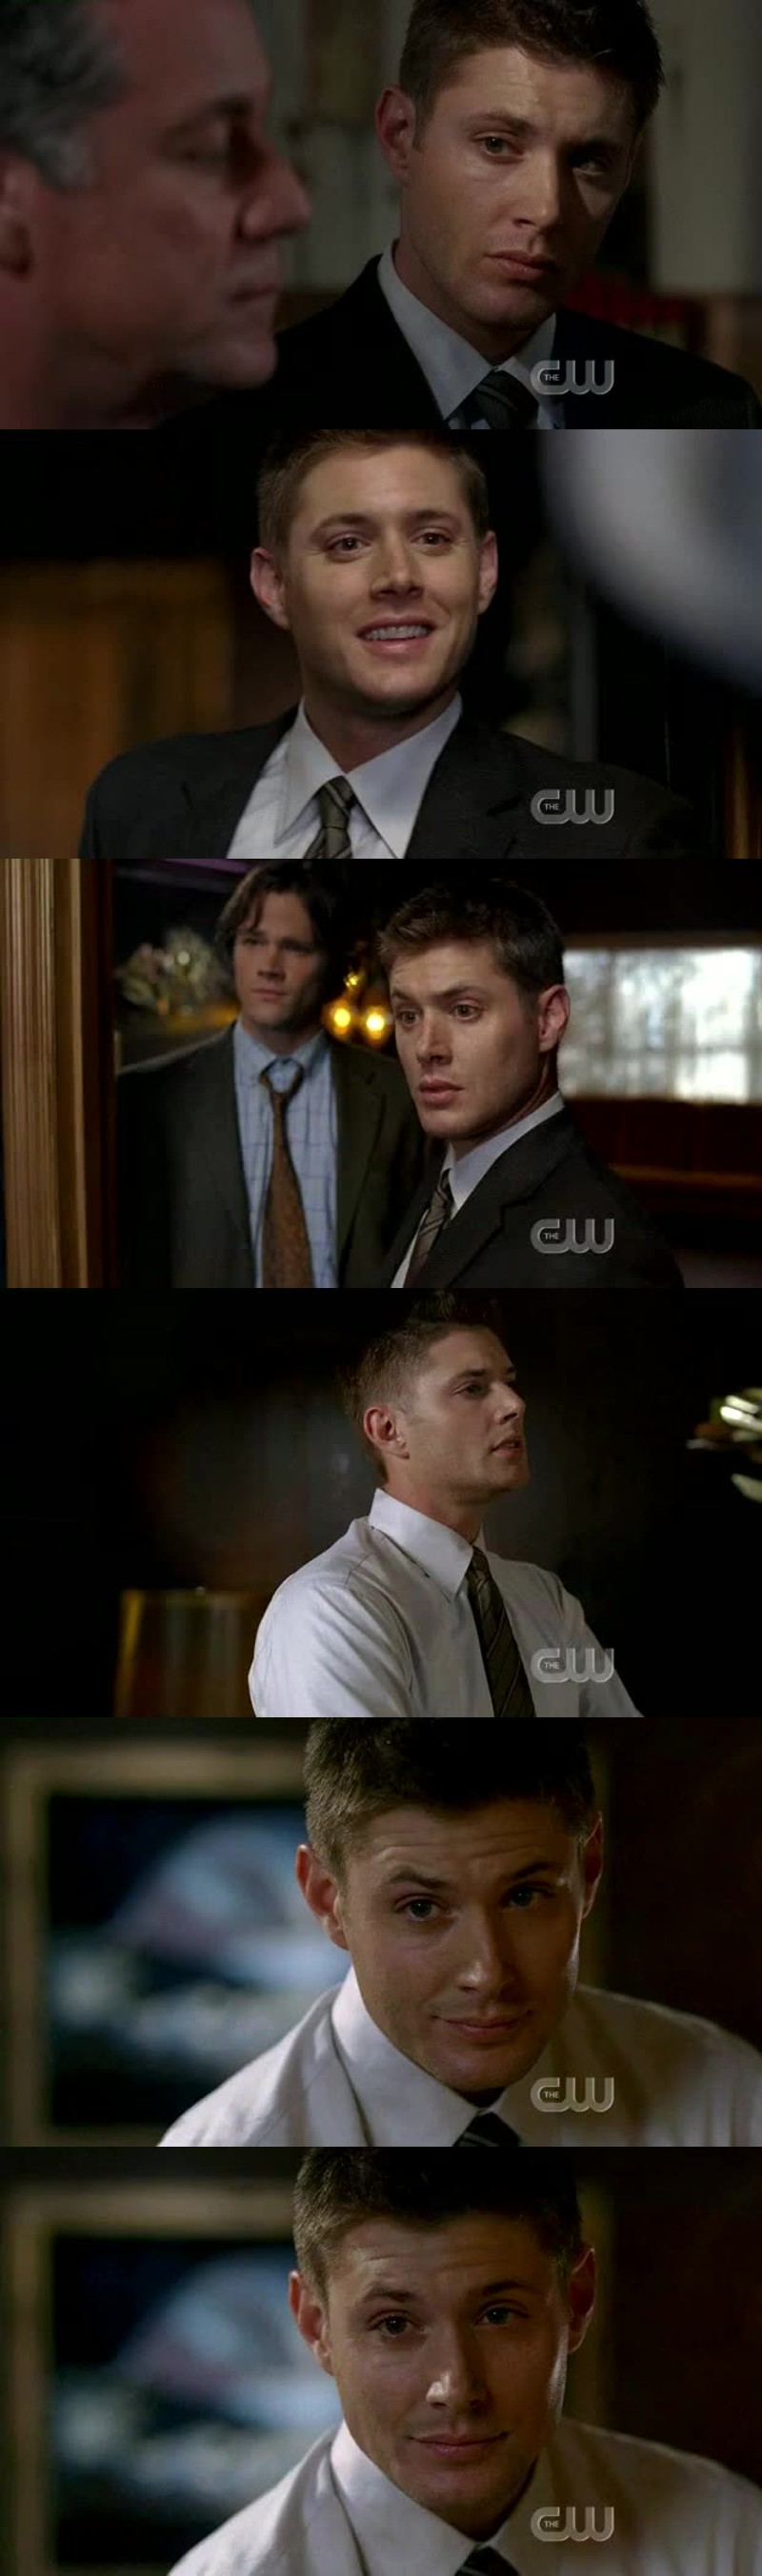 Dean in suit... It's rather hot!!! Like always anyway... 😝😂